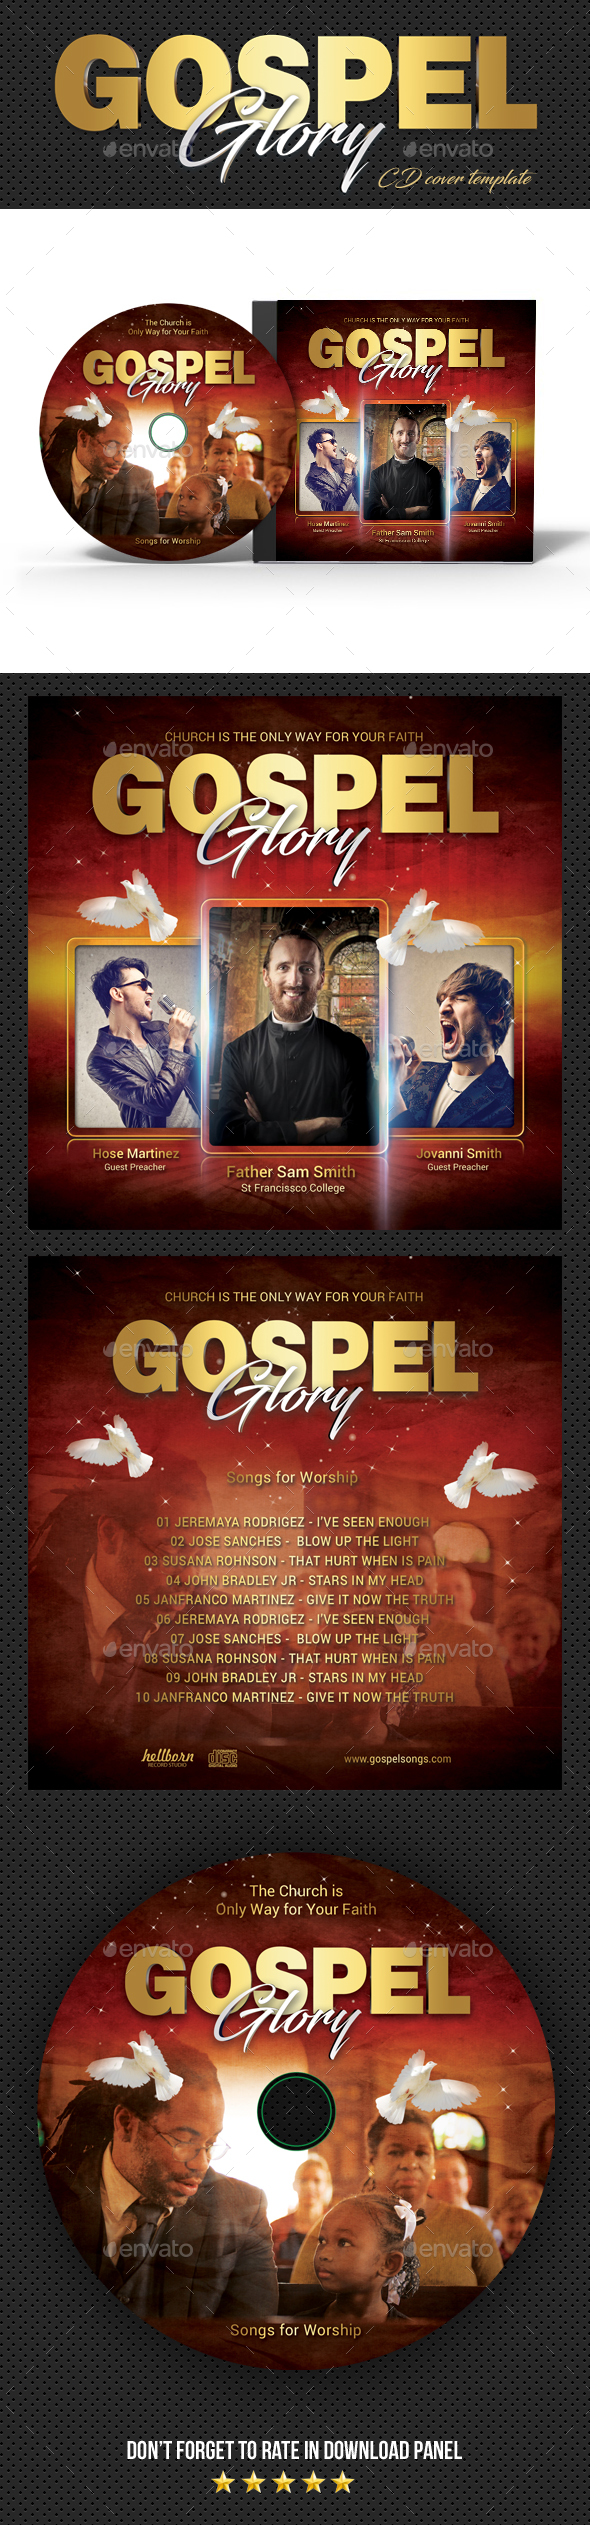 GraphicRiver Gospel Glory CD Cover 20487199